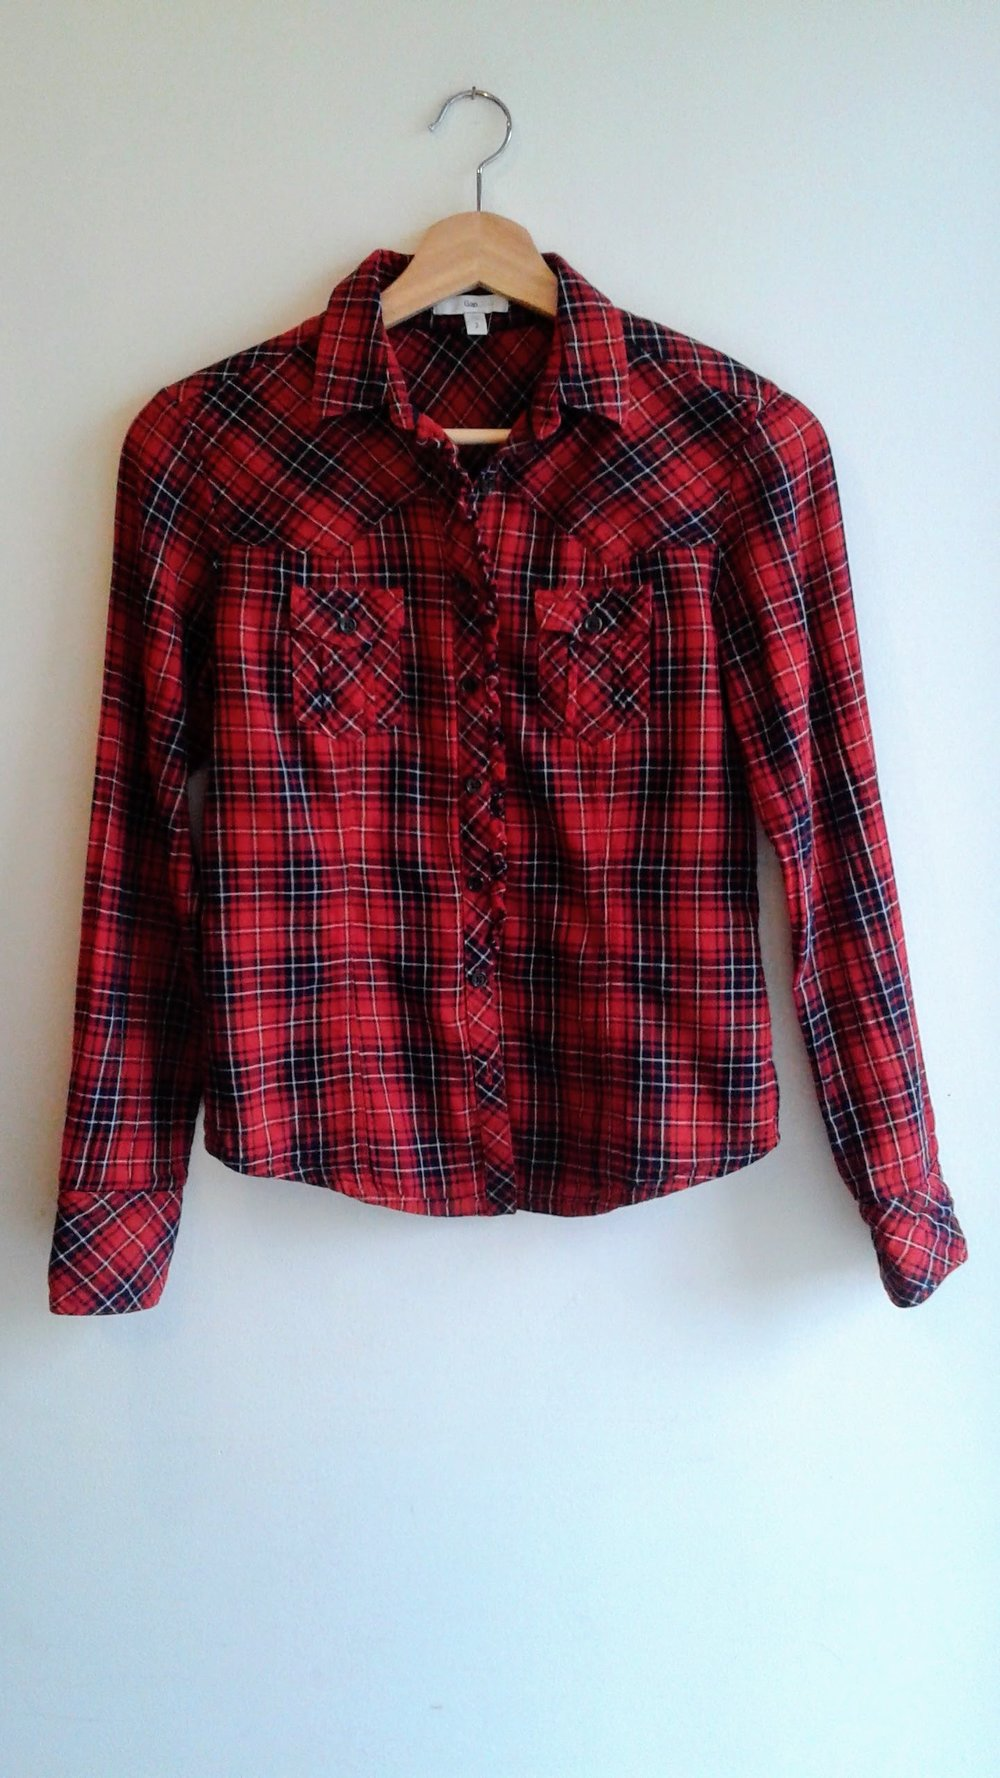 Gap shirt; Size S, $16